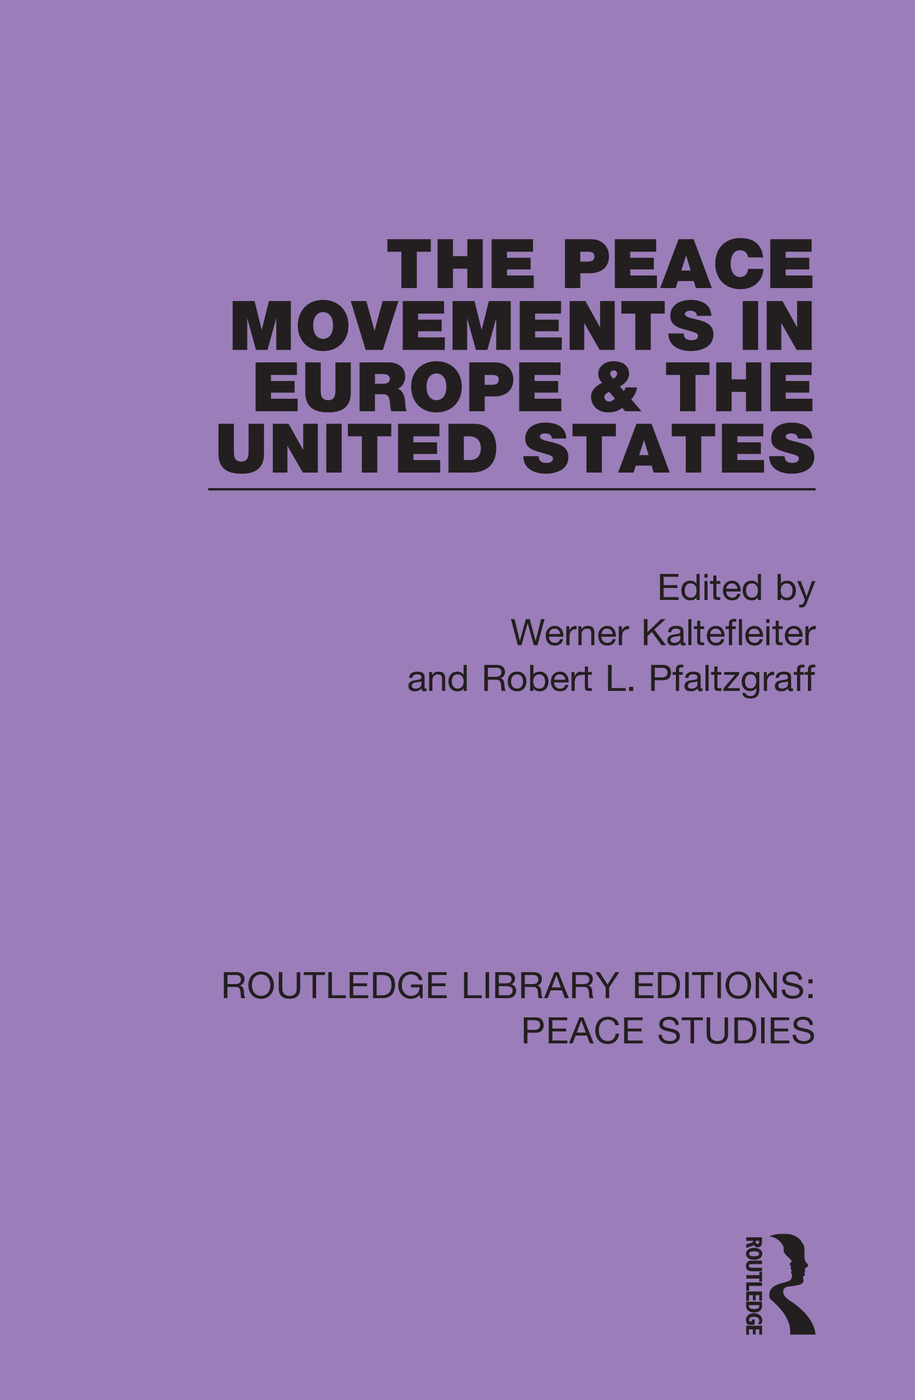 The Peace Movements in Europe and the United States